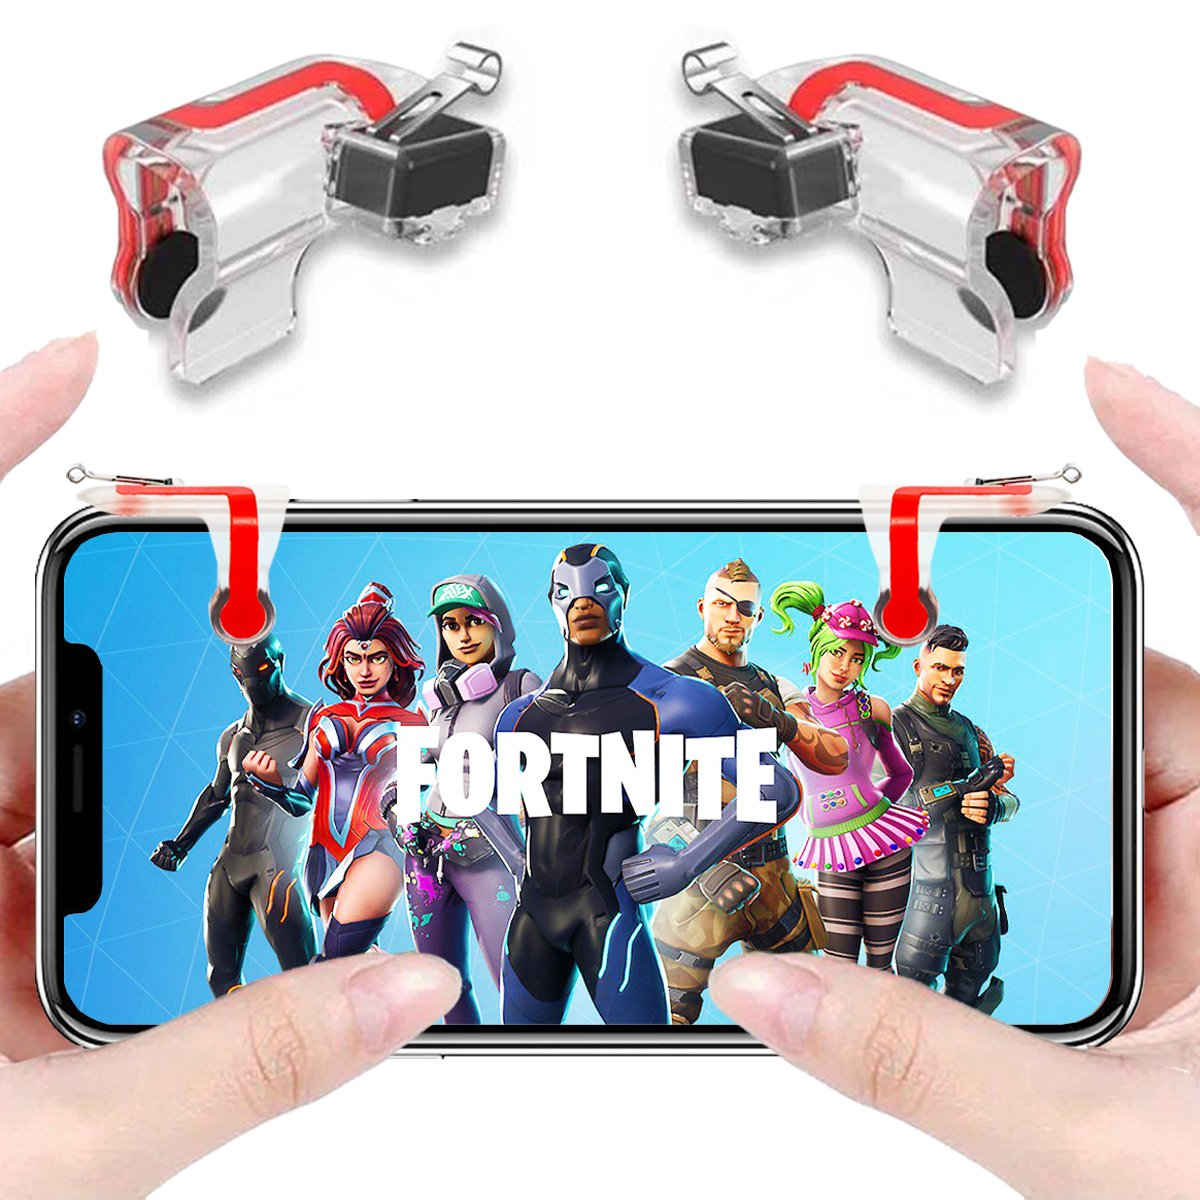 anfiner mobile controller gaming triggers phone buttons compatible with fortnite pubg battle royale knives out free fire fps mobile games with sharpshooter - compatible fortnite mobile